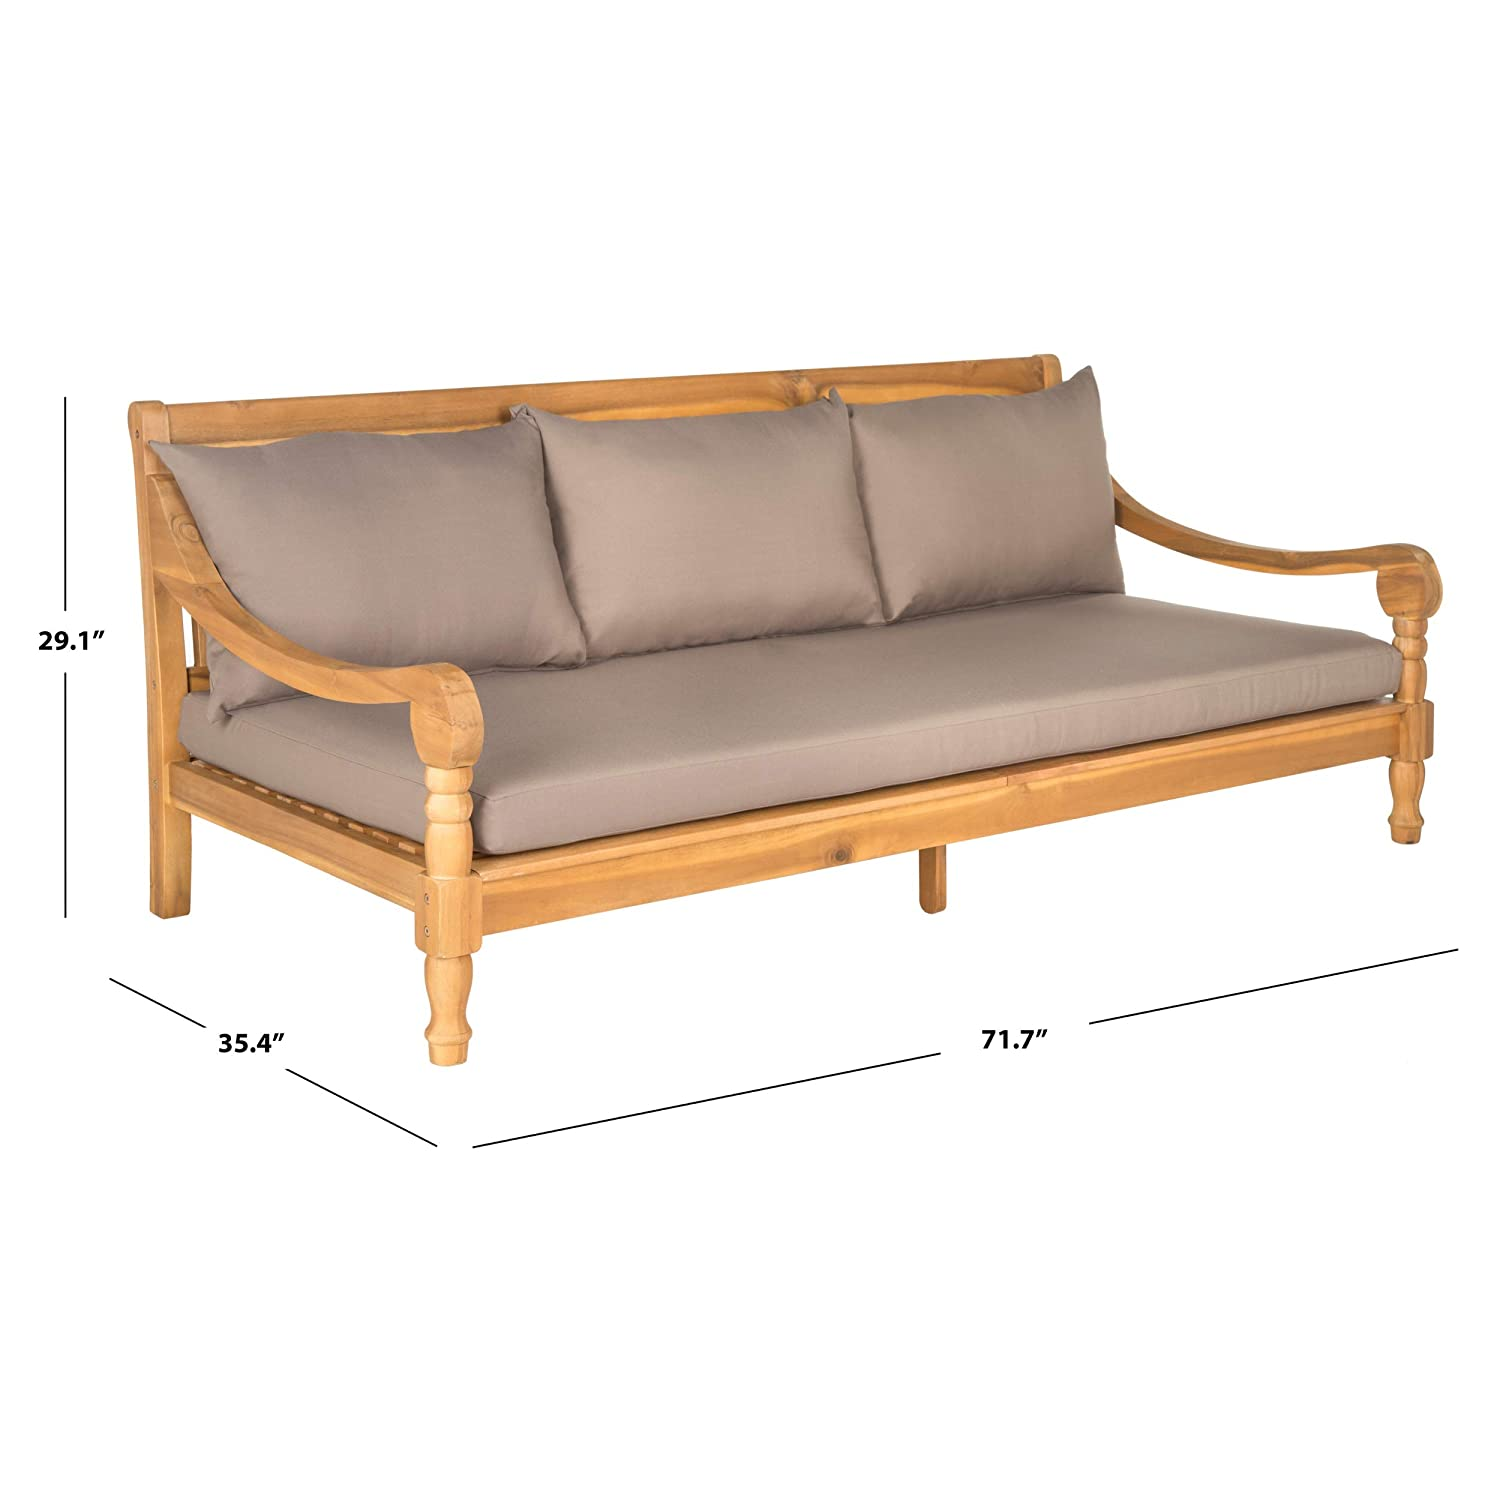 Amazon.com: Safavieh Outdoor Collection Pasadena Day Bed ...